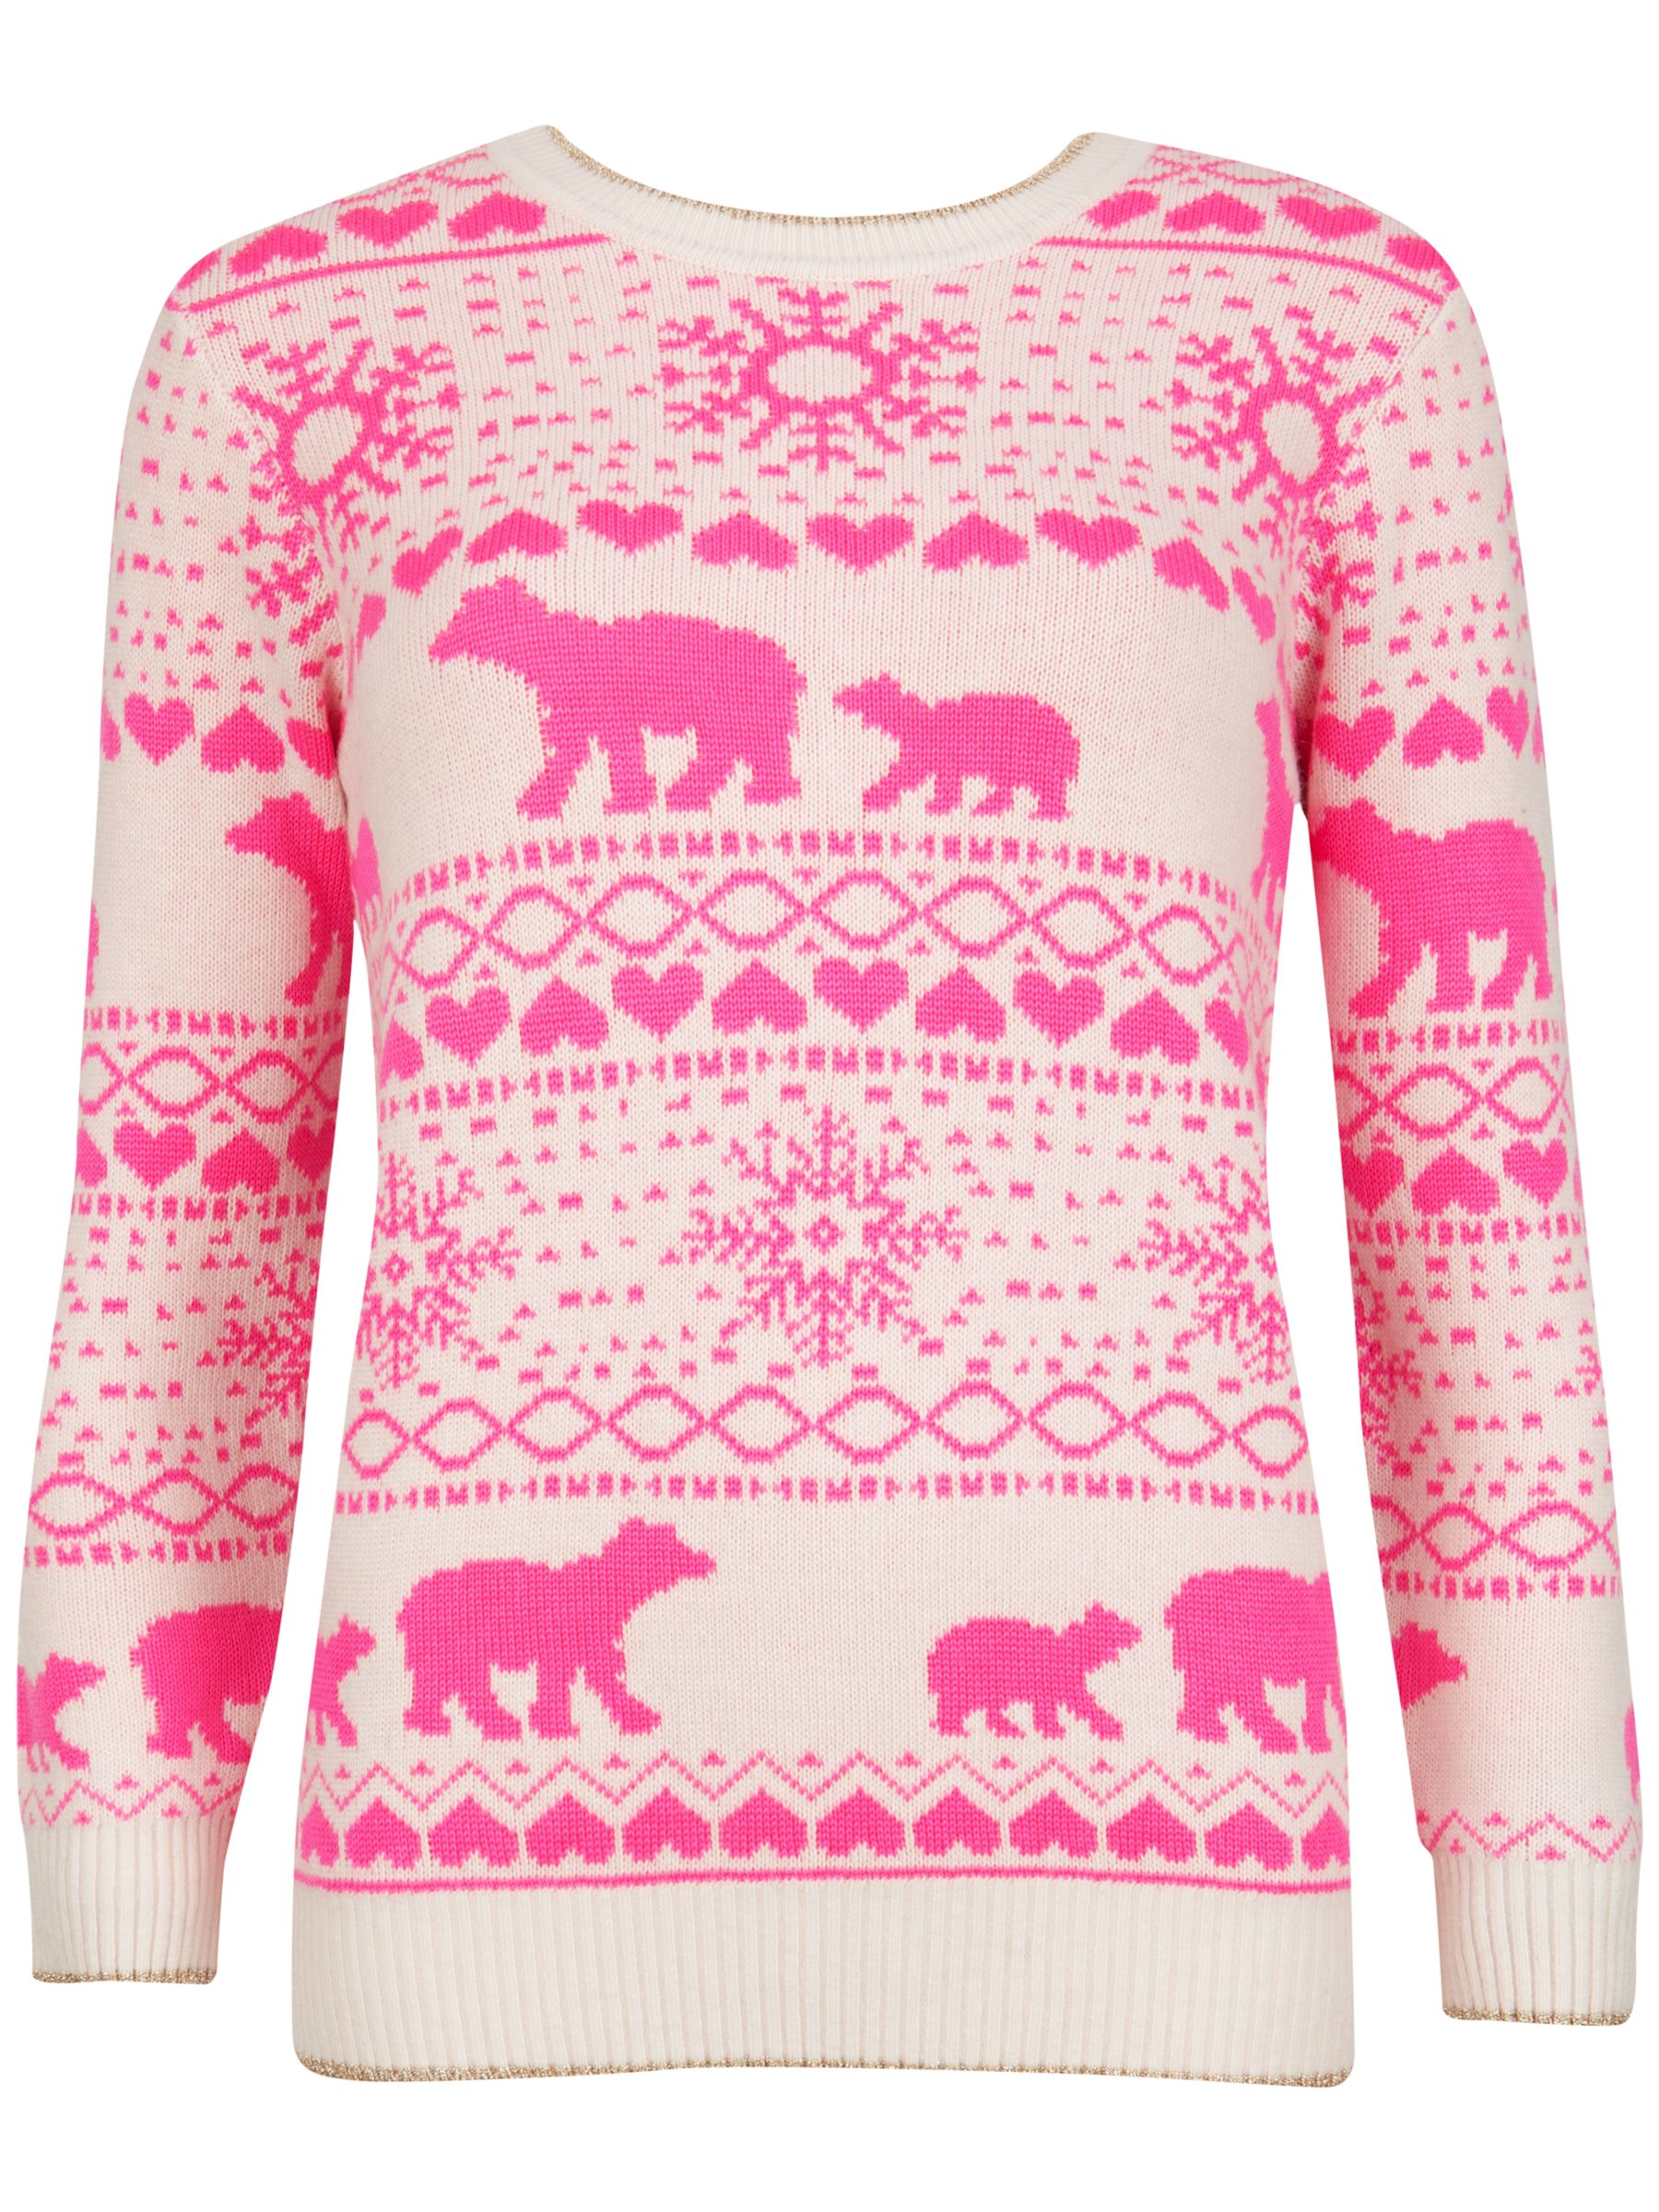 John Lewis Monty Knitting Pattern : Christmas Jumpers Christmas John Lewis